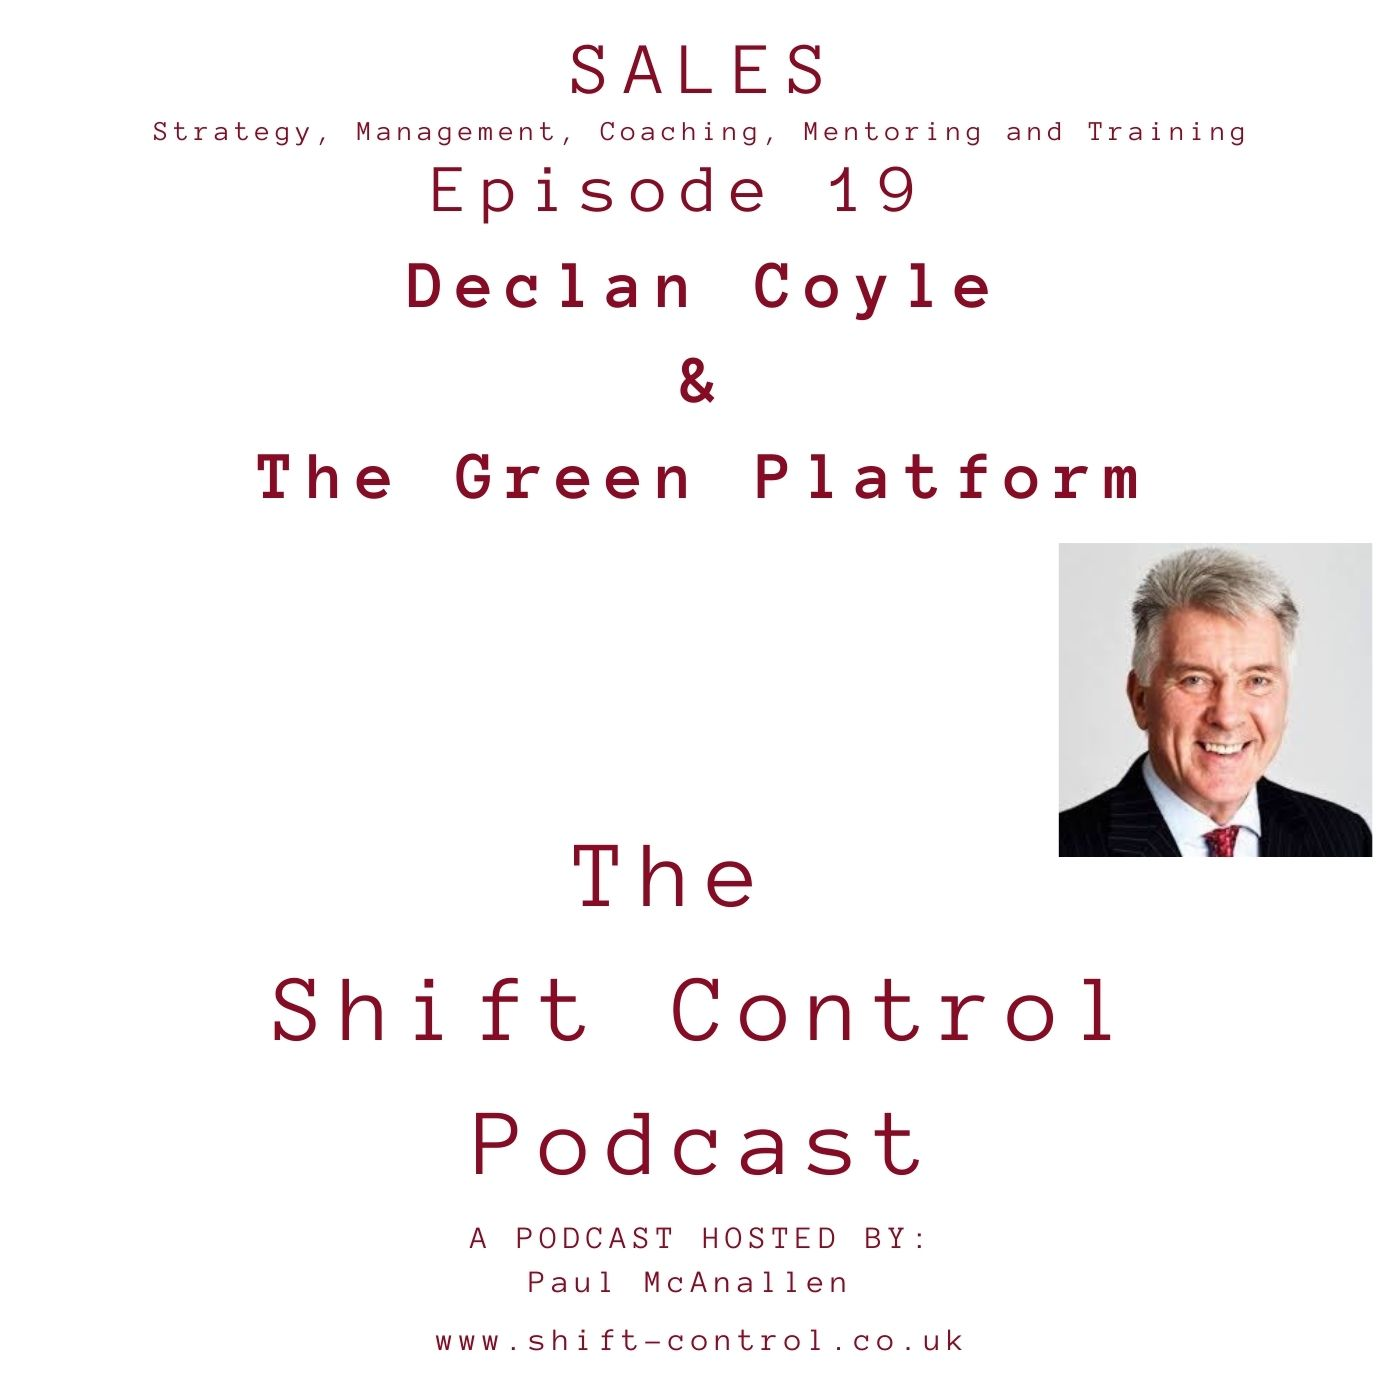 Episode 19: Declan Coyle and The Green Platform